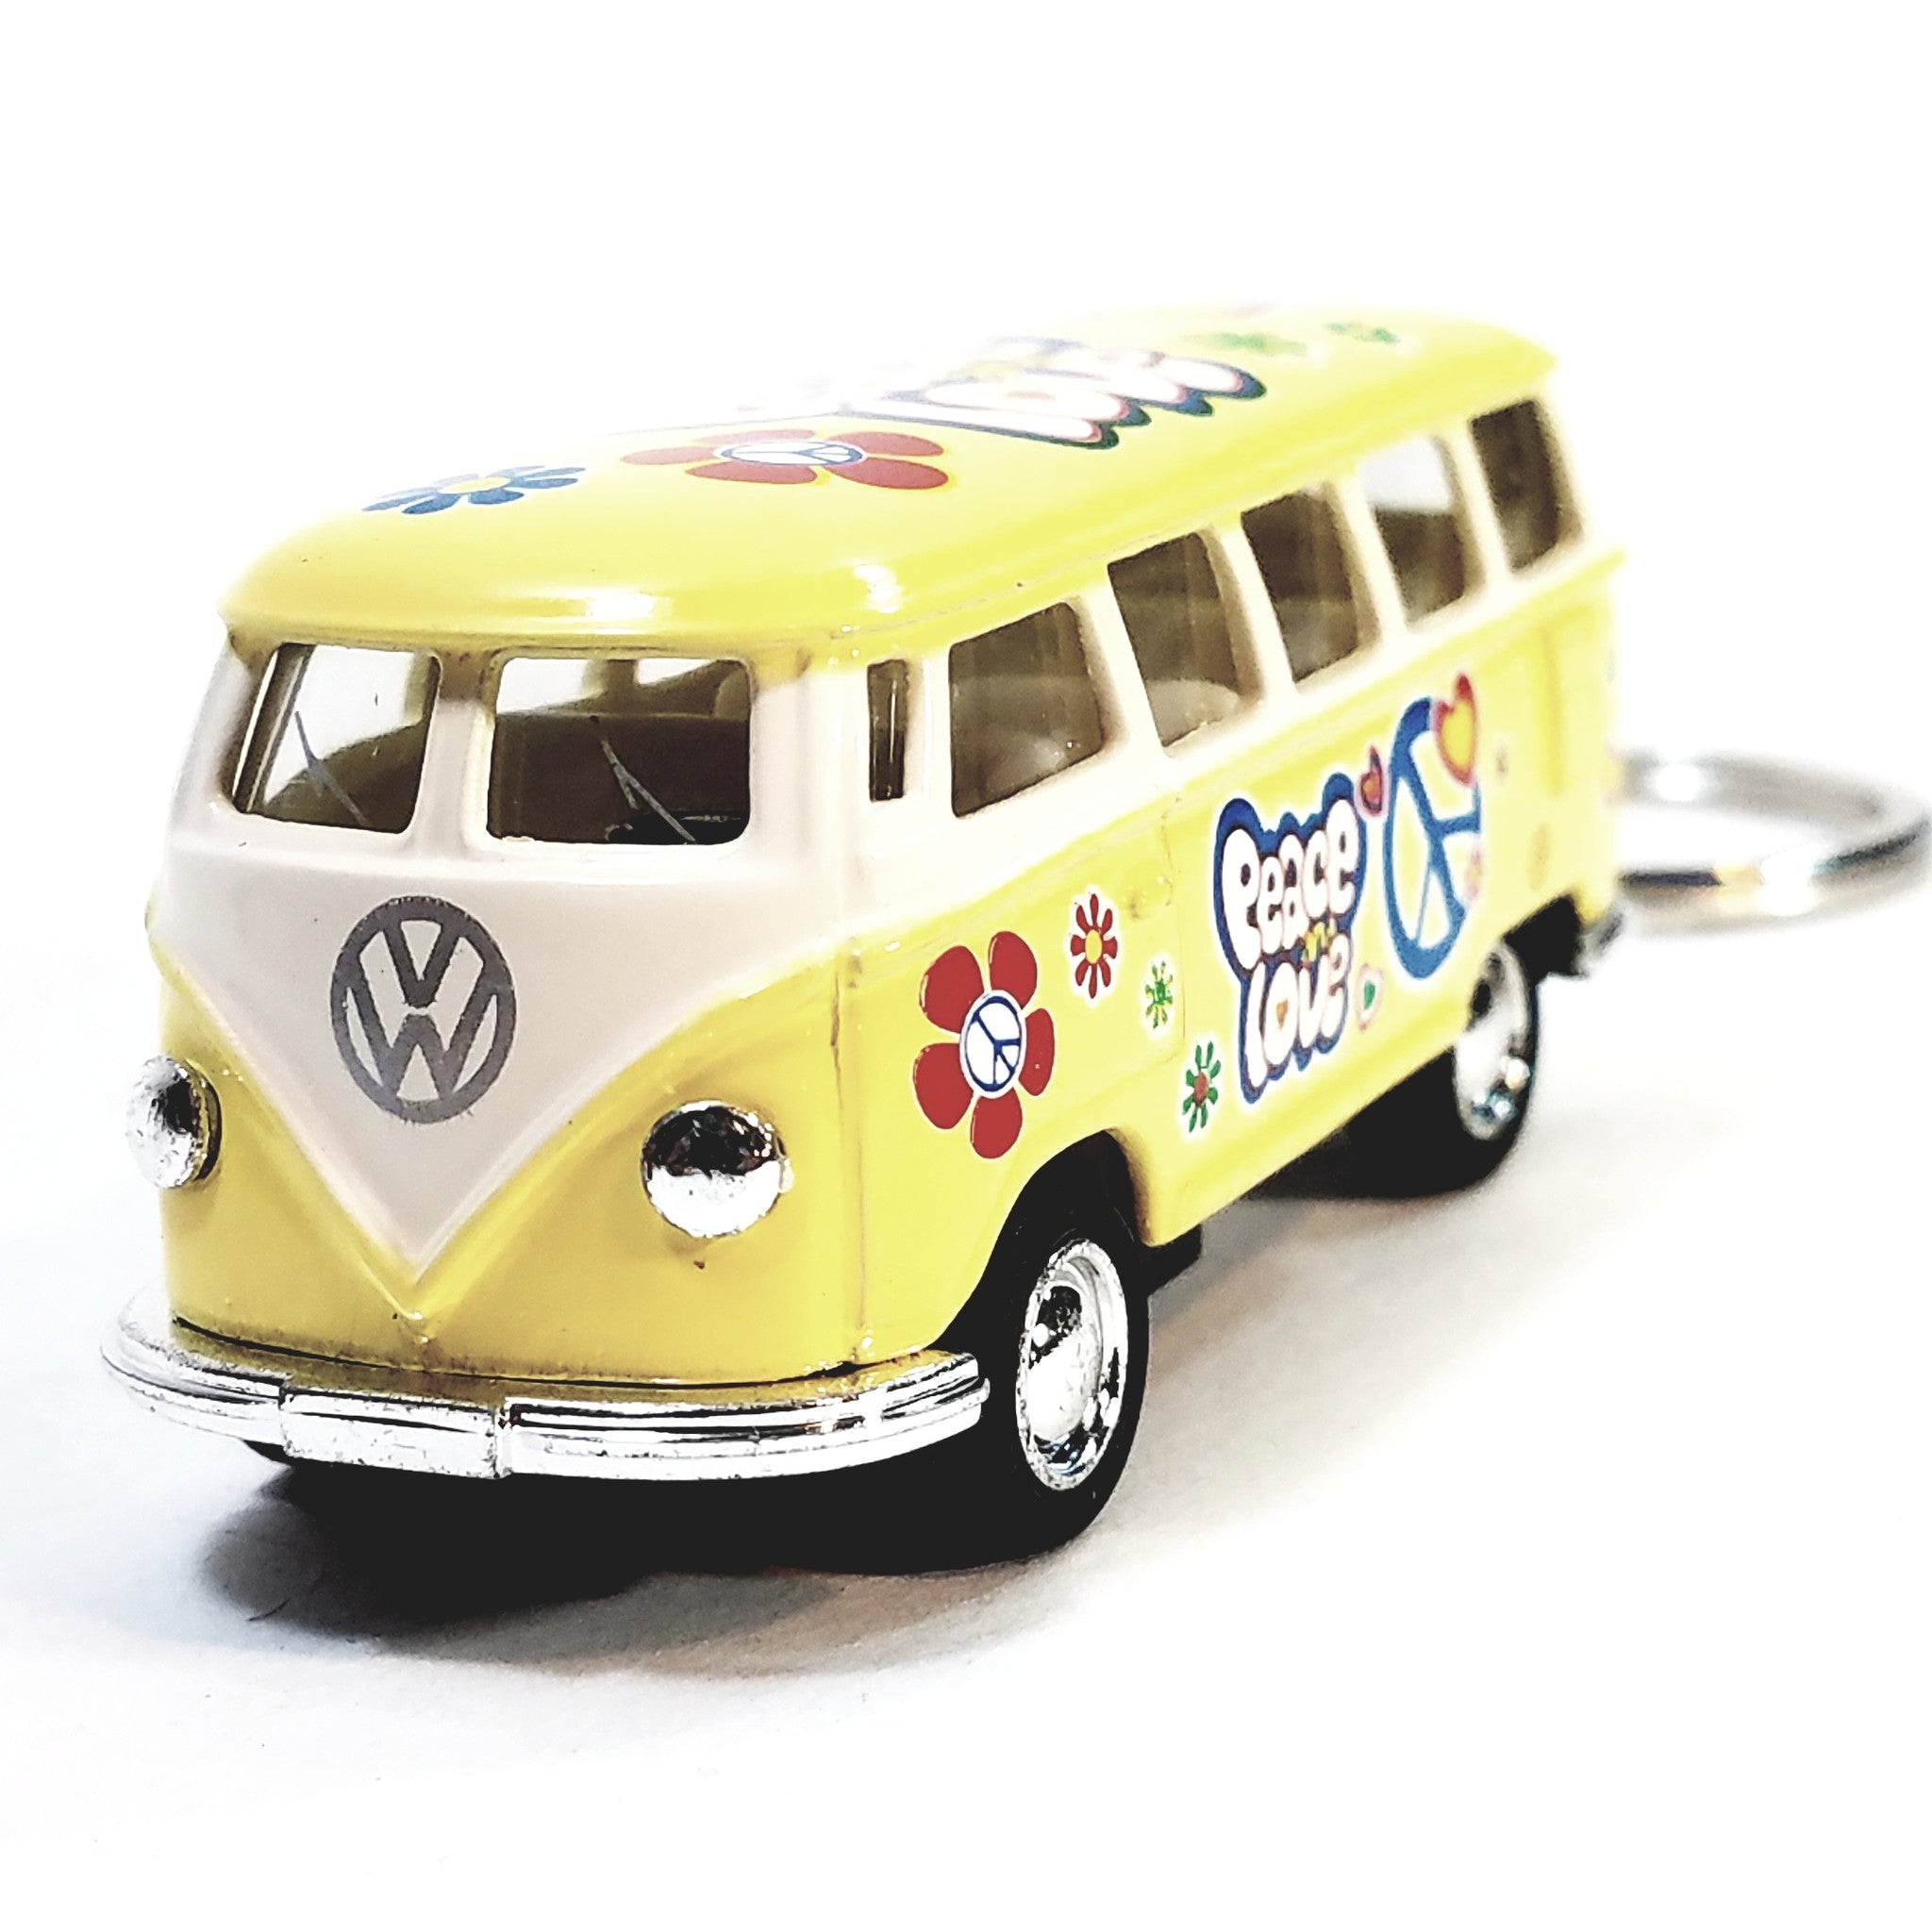 Kinsmart Yellow Classic 1962 Love Peace Vw Volkswagen Hippie Bus K Enigmatoys